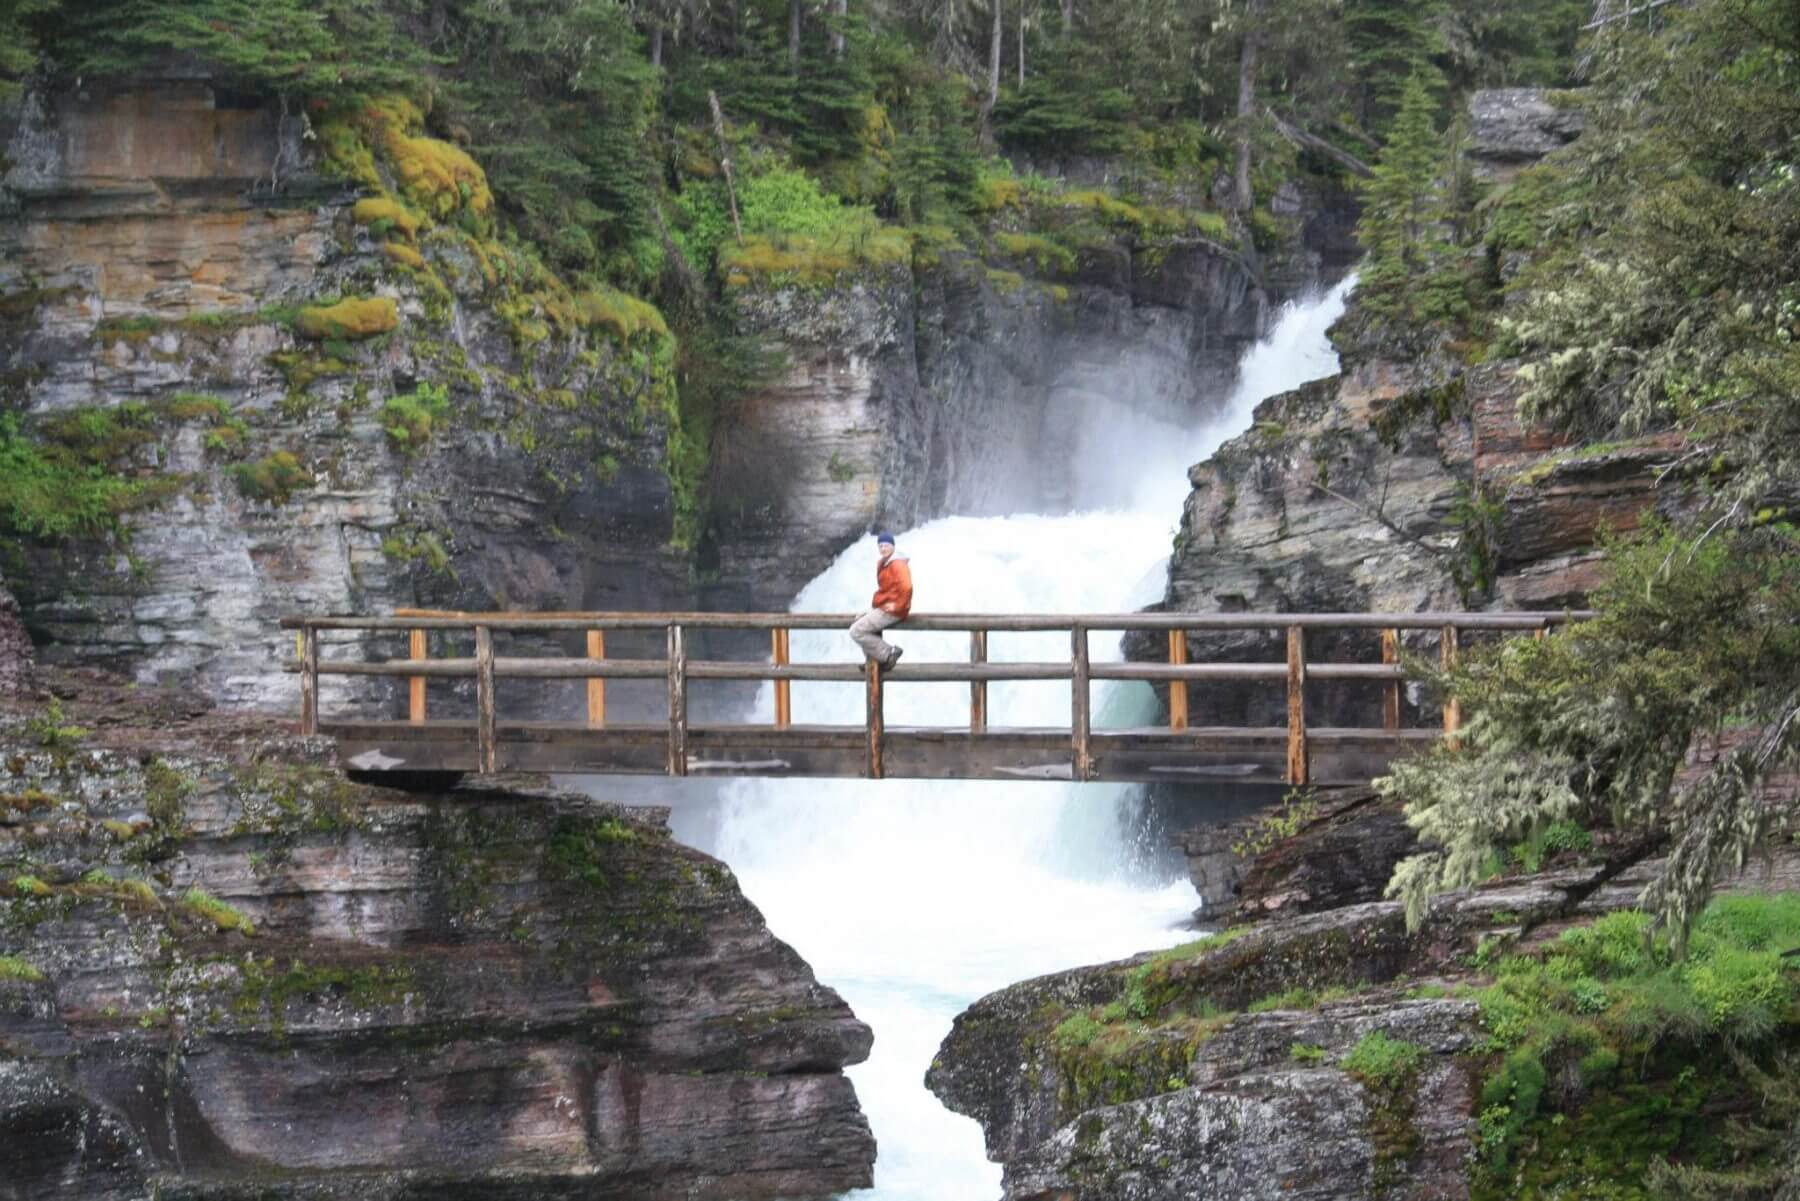 Glacier National Park Lodging Admissions Trails & Advice